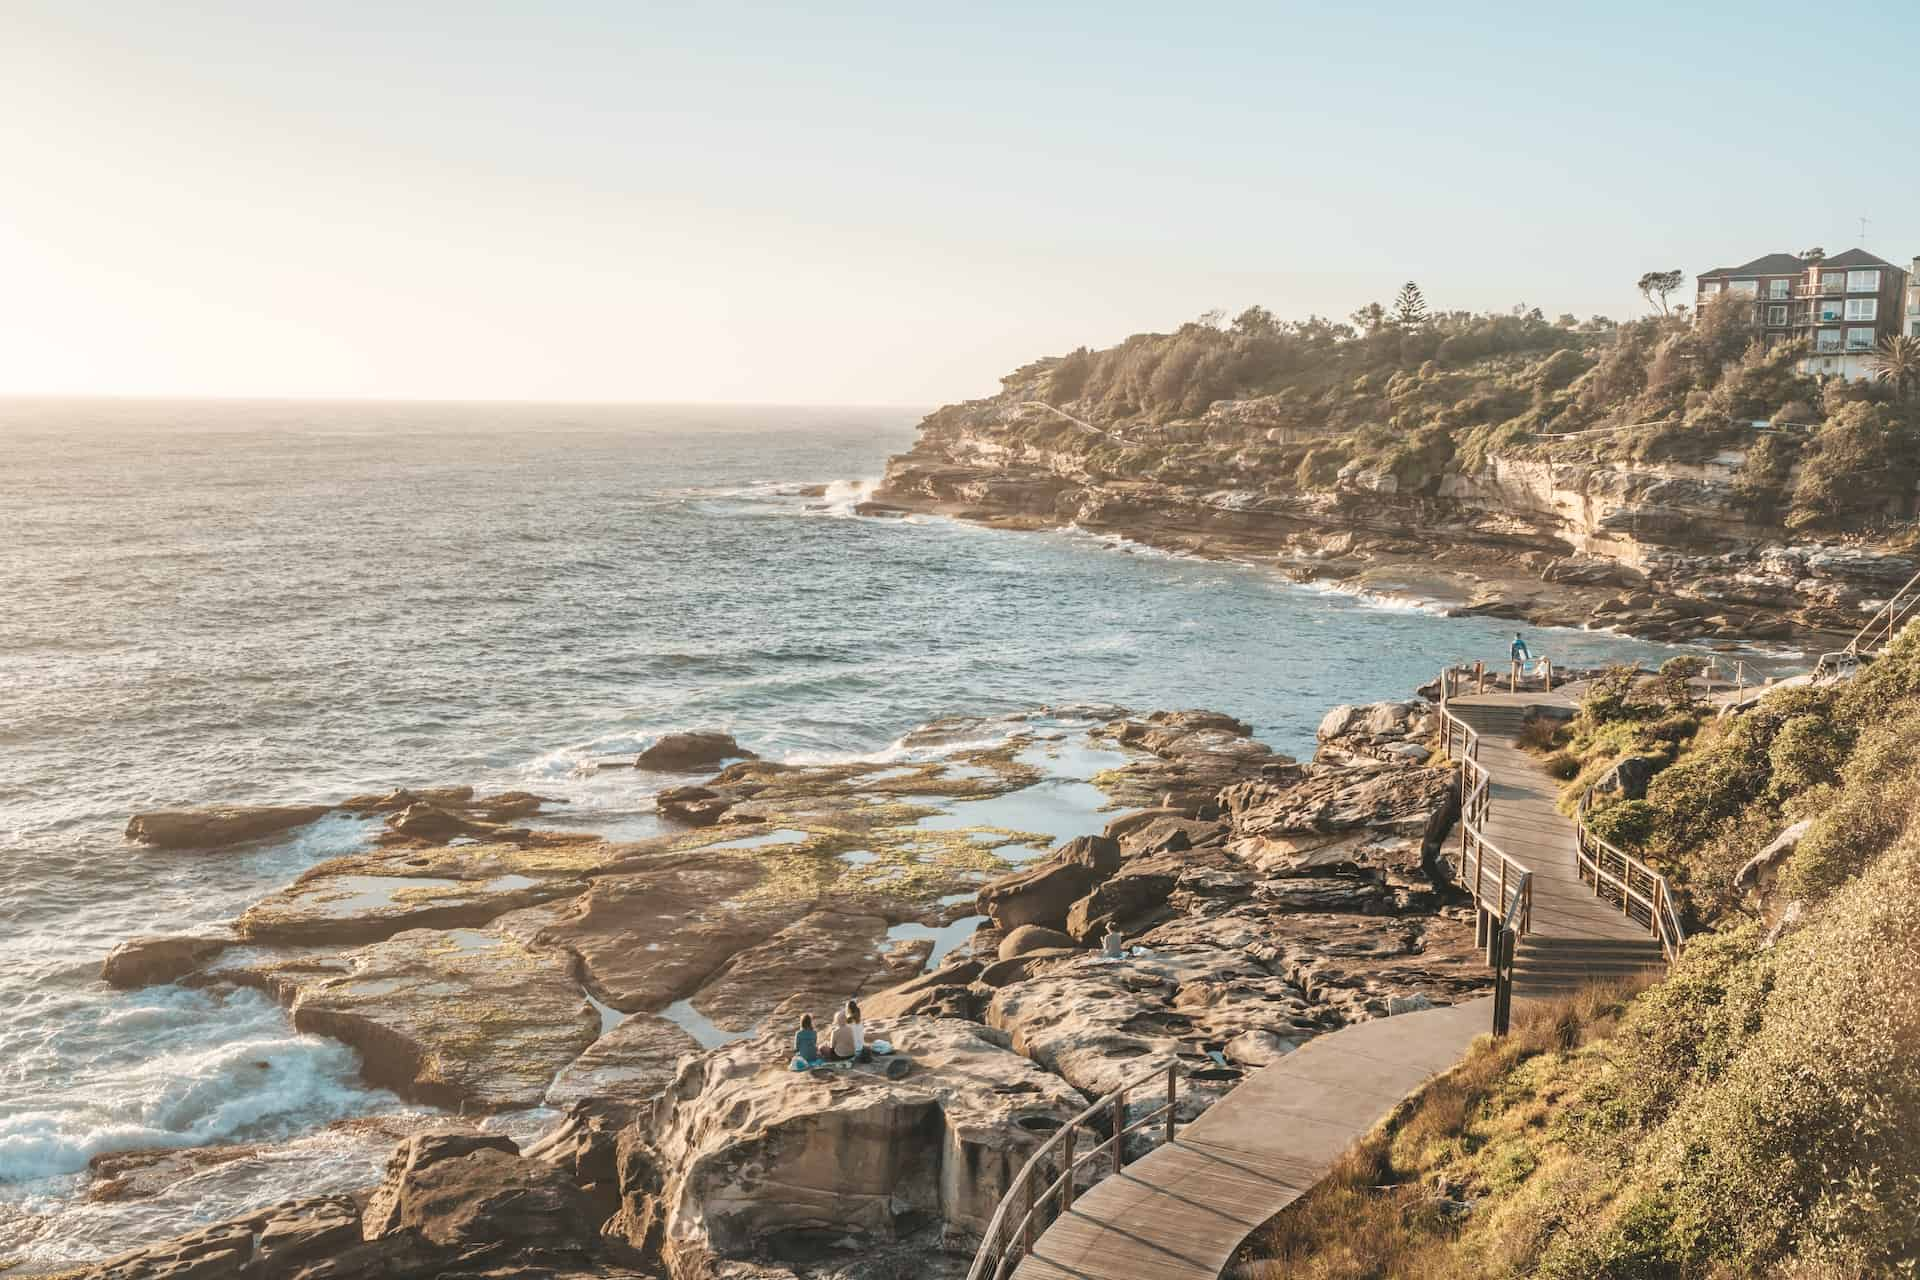 What to Know About the Bondi to Coogee Coastal Walk